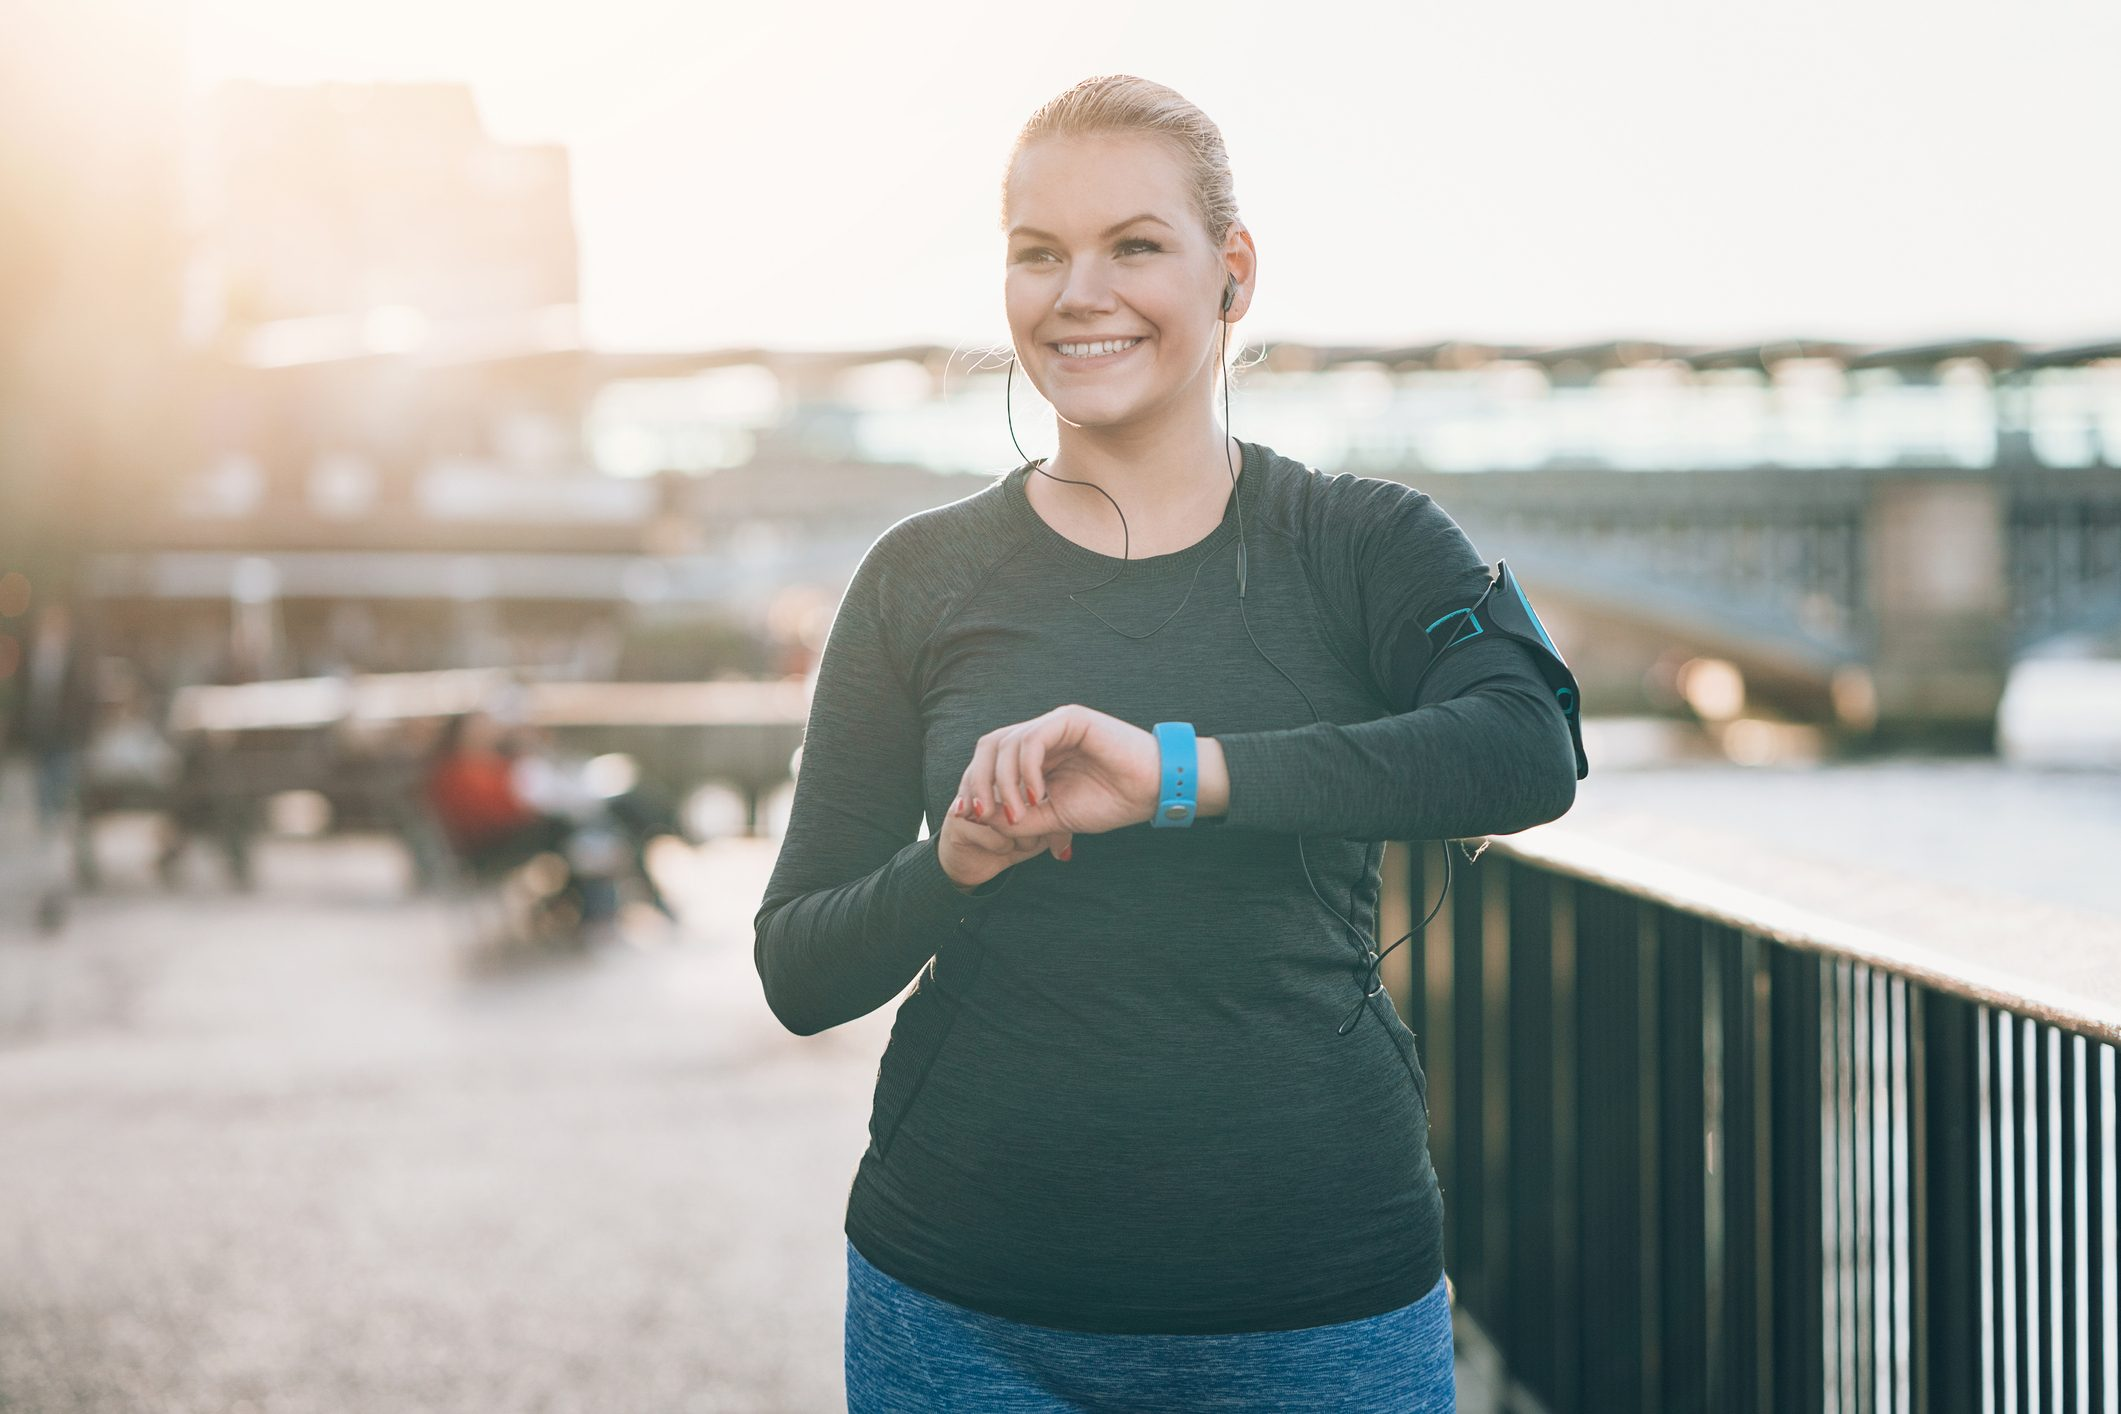 smiling woman working out